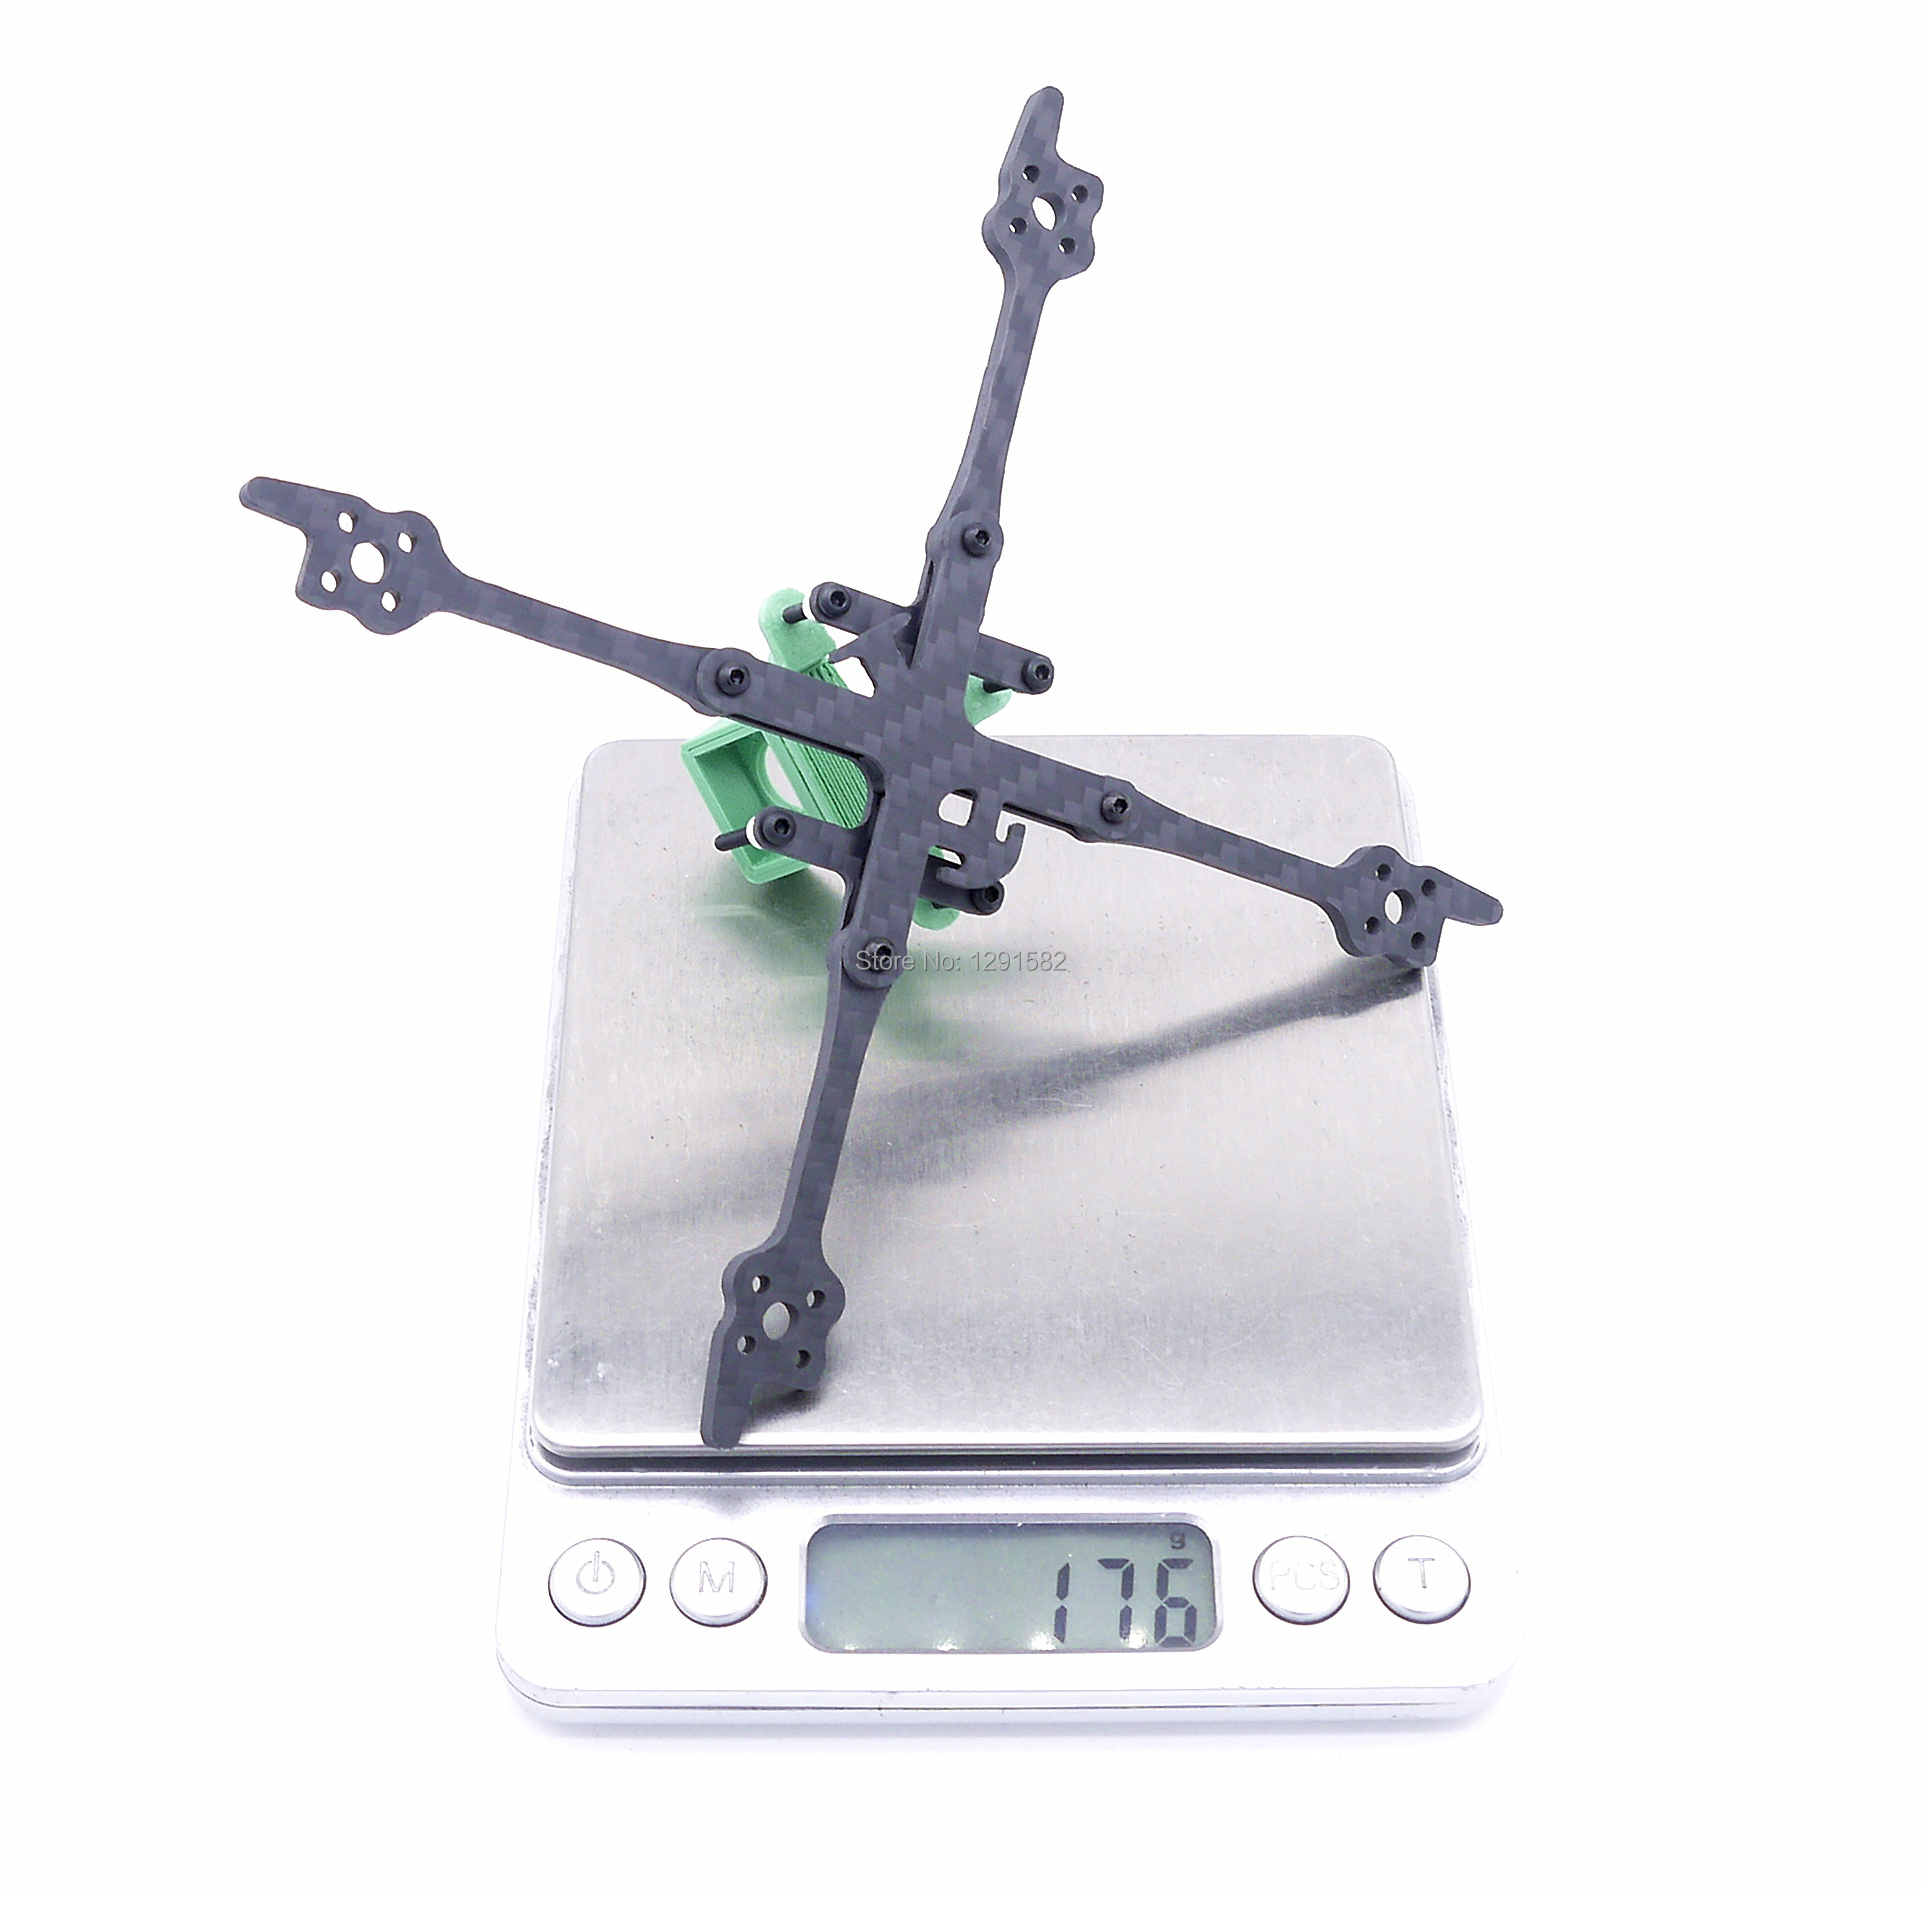 Image 5 - FPV Fonster Kpro 2.5inch 125 125mm X type Toothpick 3mm Arm thickness FPV Tiny Frame for FPV Racing Drone kitParts & Accessories   -